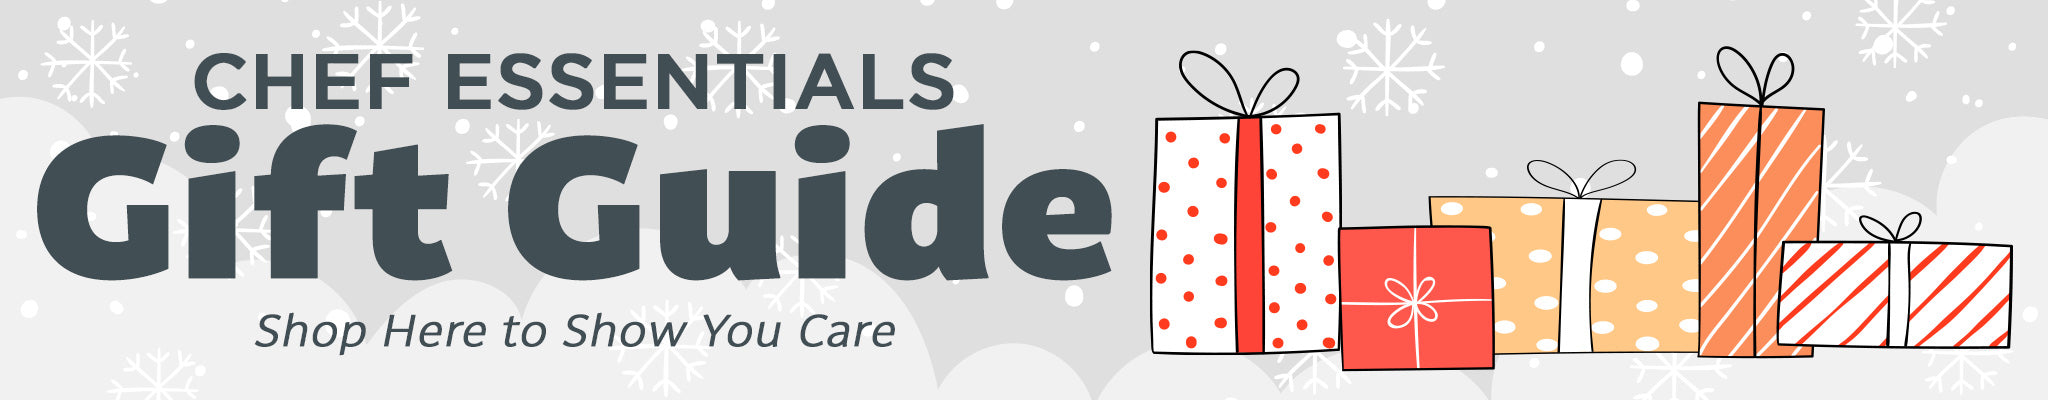 Chef Essentials Gift Guide | Shop Here to Show You Care